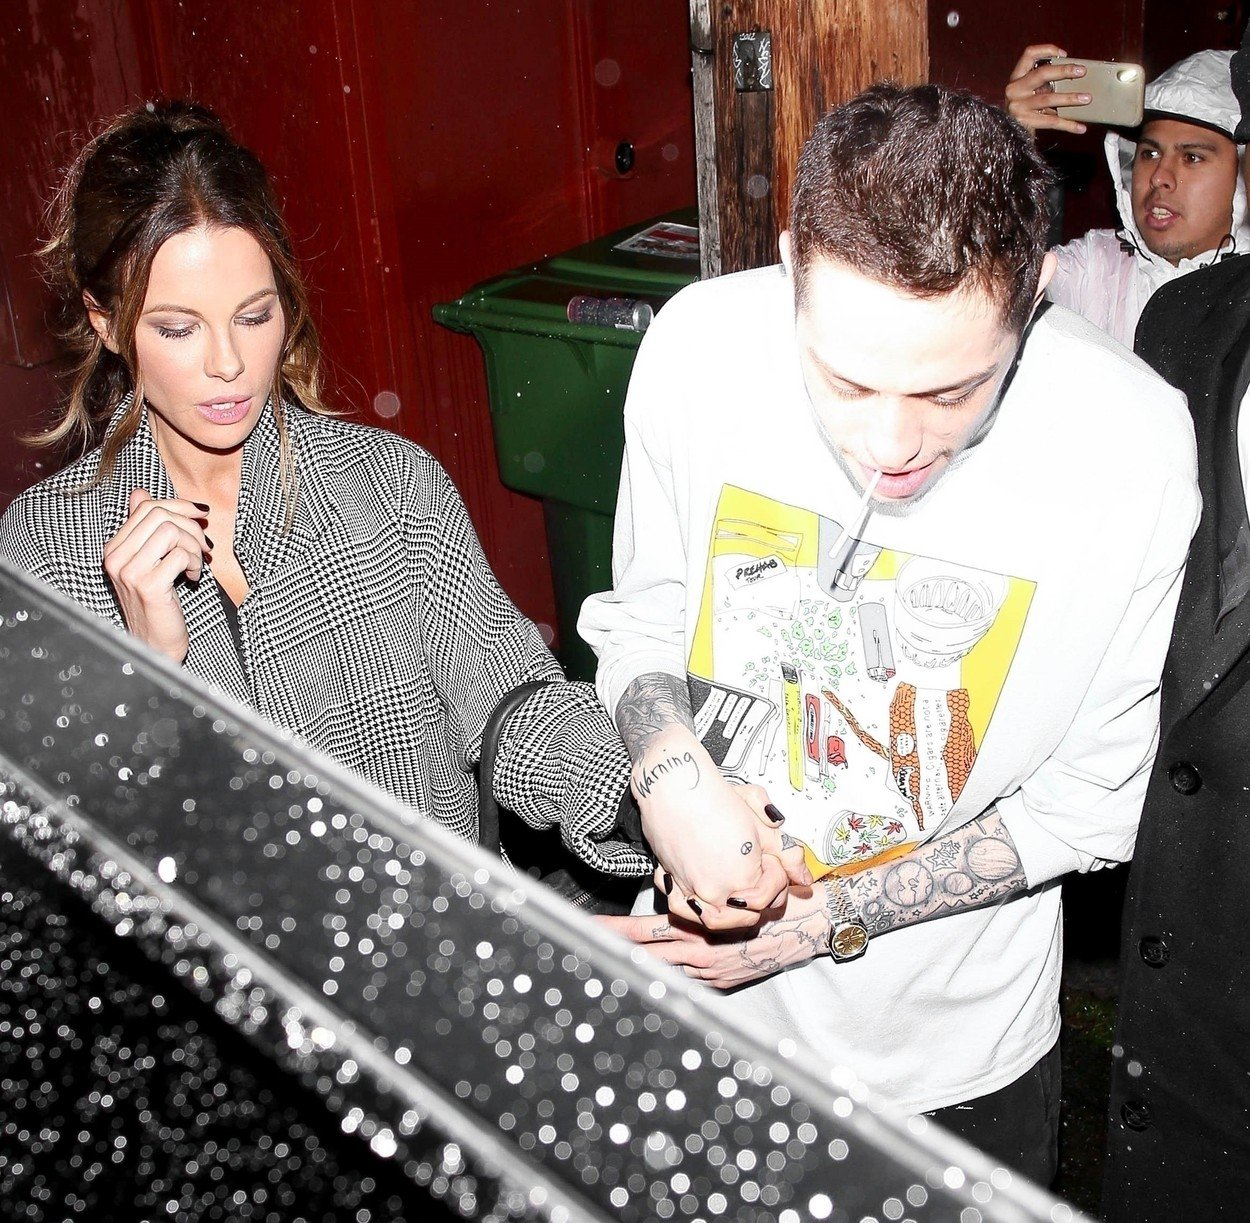 Los Angeles, CA  - Pete Davidson and Kate Beckinsale hold hands displaying confirm of the dating rumors while leaving his stand up show at Largo at the Coronet.  Pictured: Pete Davidson, Kate Beckinsale  BACKGRID USA 2 FEBRUARY 2019, Image: 411800007, License: Rights-managed, Restrictions: , Model Release: no, Credit line: Profimedia, Backgrid USA